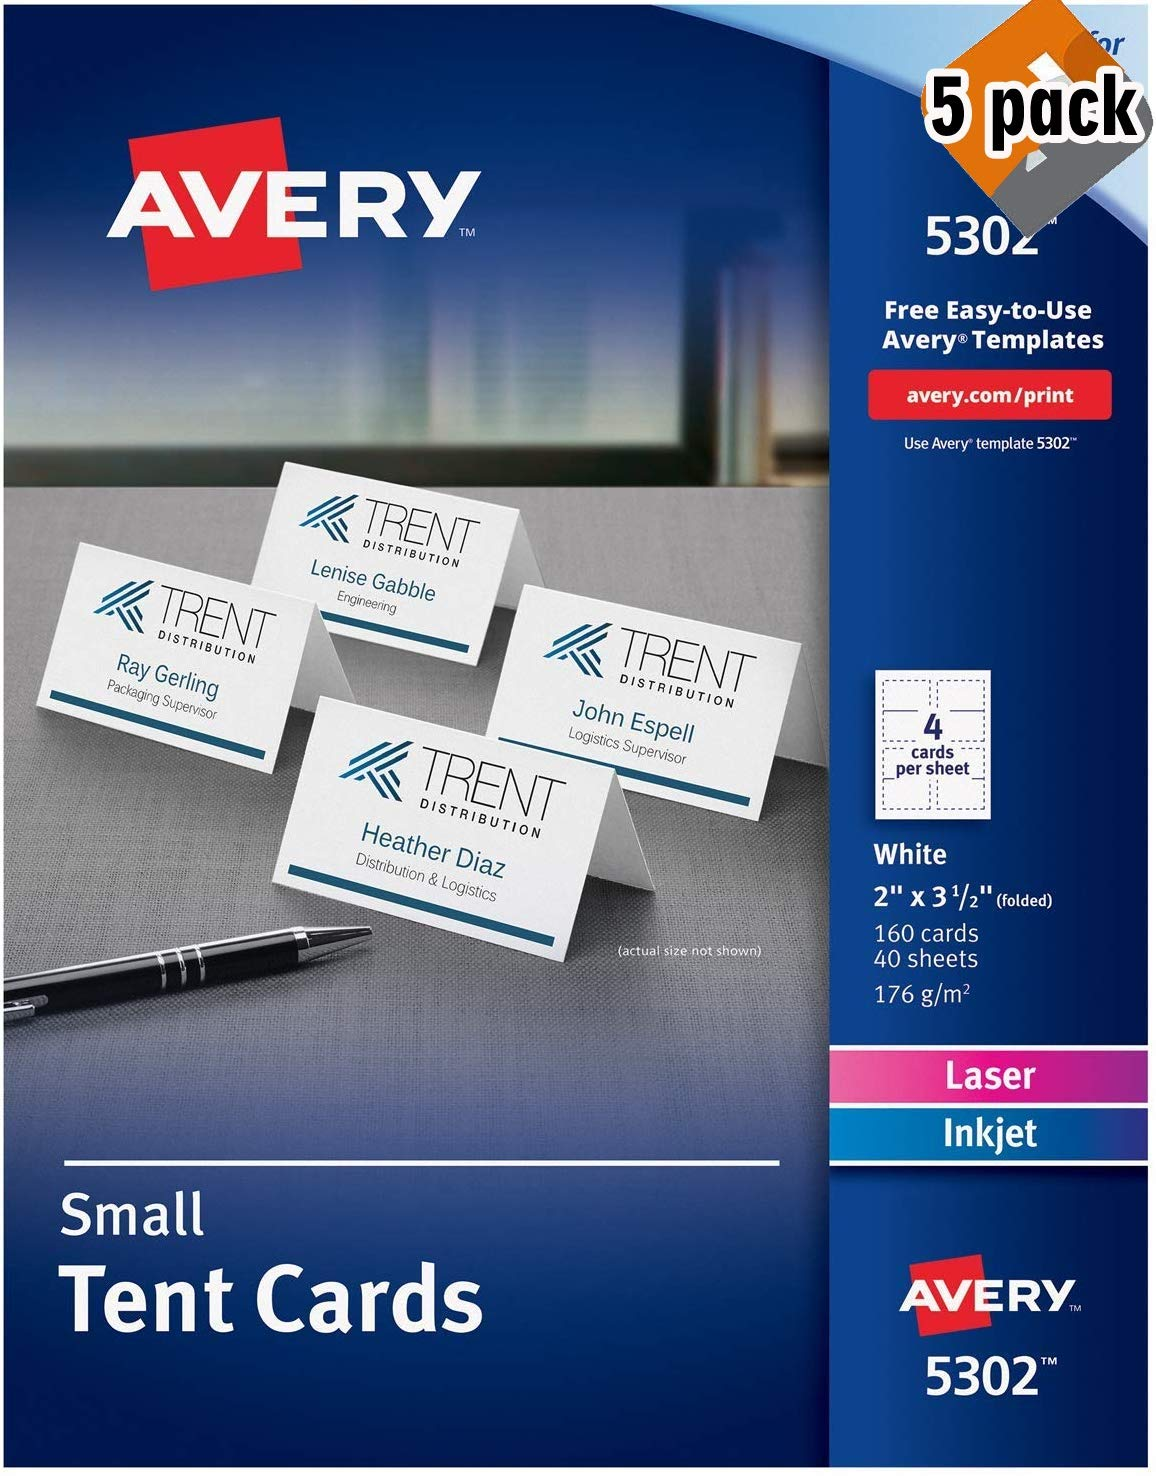 Avery Place Cards, Laser & Inkjet Printers, 160 Printable Cards, 2 x 3.5 (5302), White - 5 Pack by AVERY